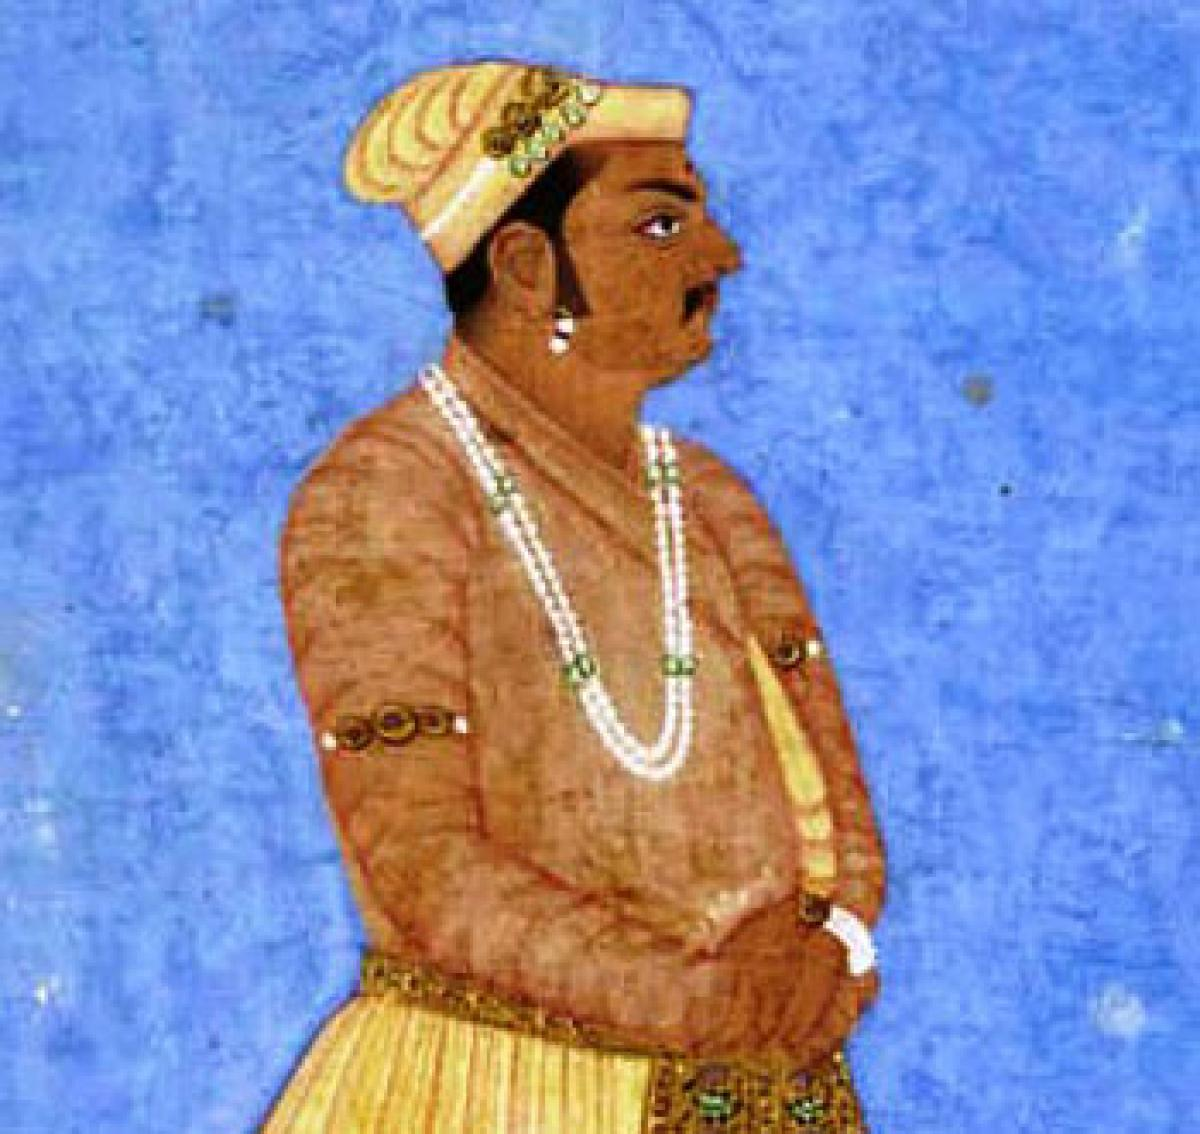 Birbal back to square one